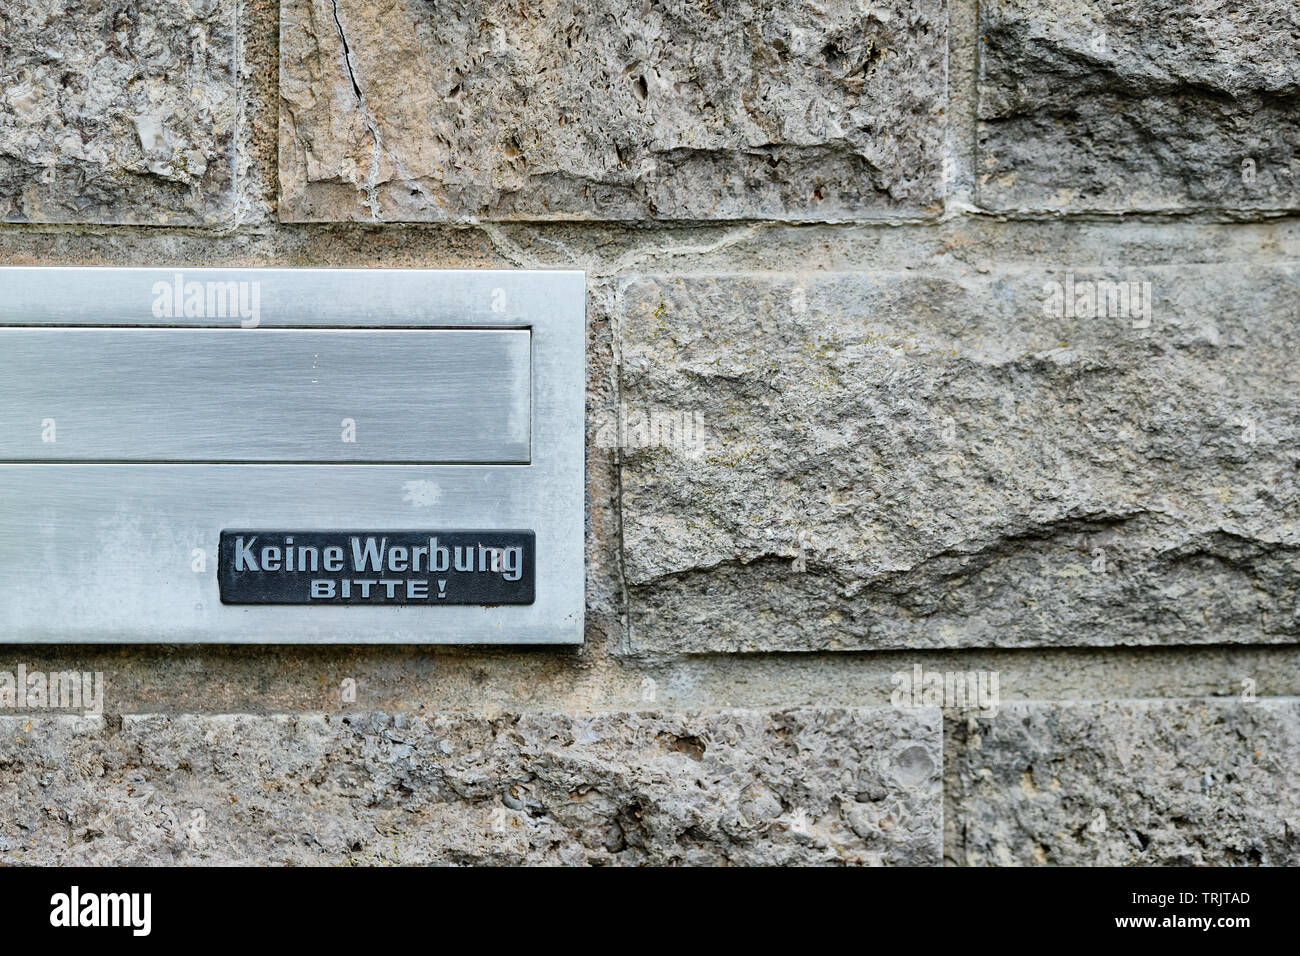 Nuremberg, Germany - May 16, 2019: Silver mailbox in a gray wall made of stones with a sign that says 'Keine Werbung bitte!' (No advertising please) - Stock Image